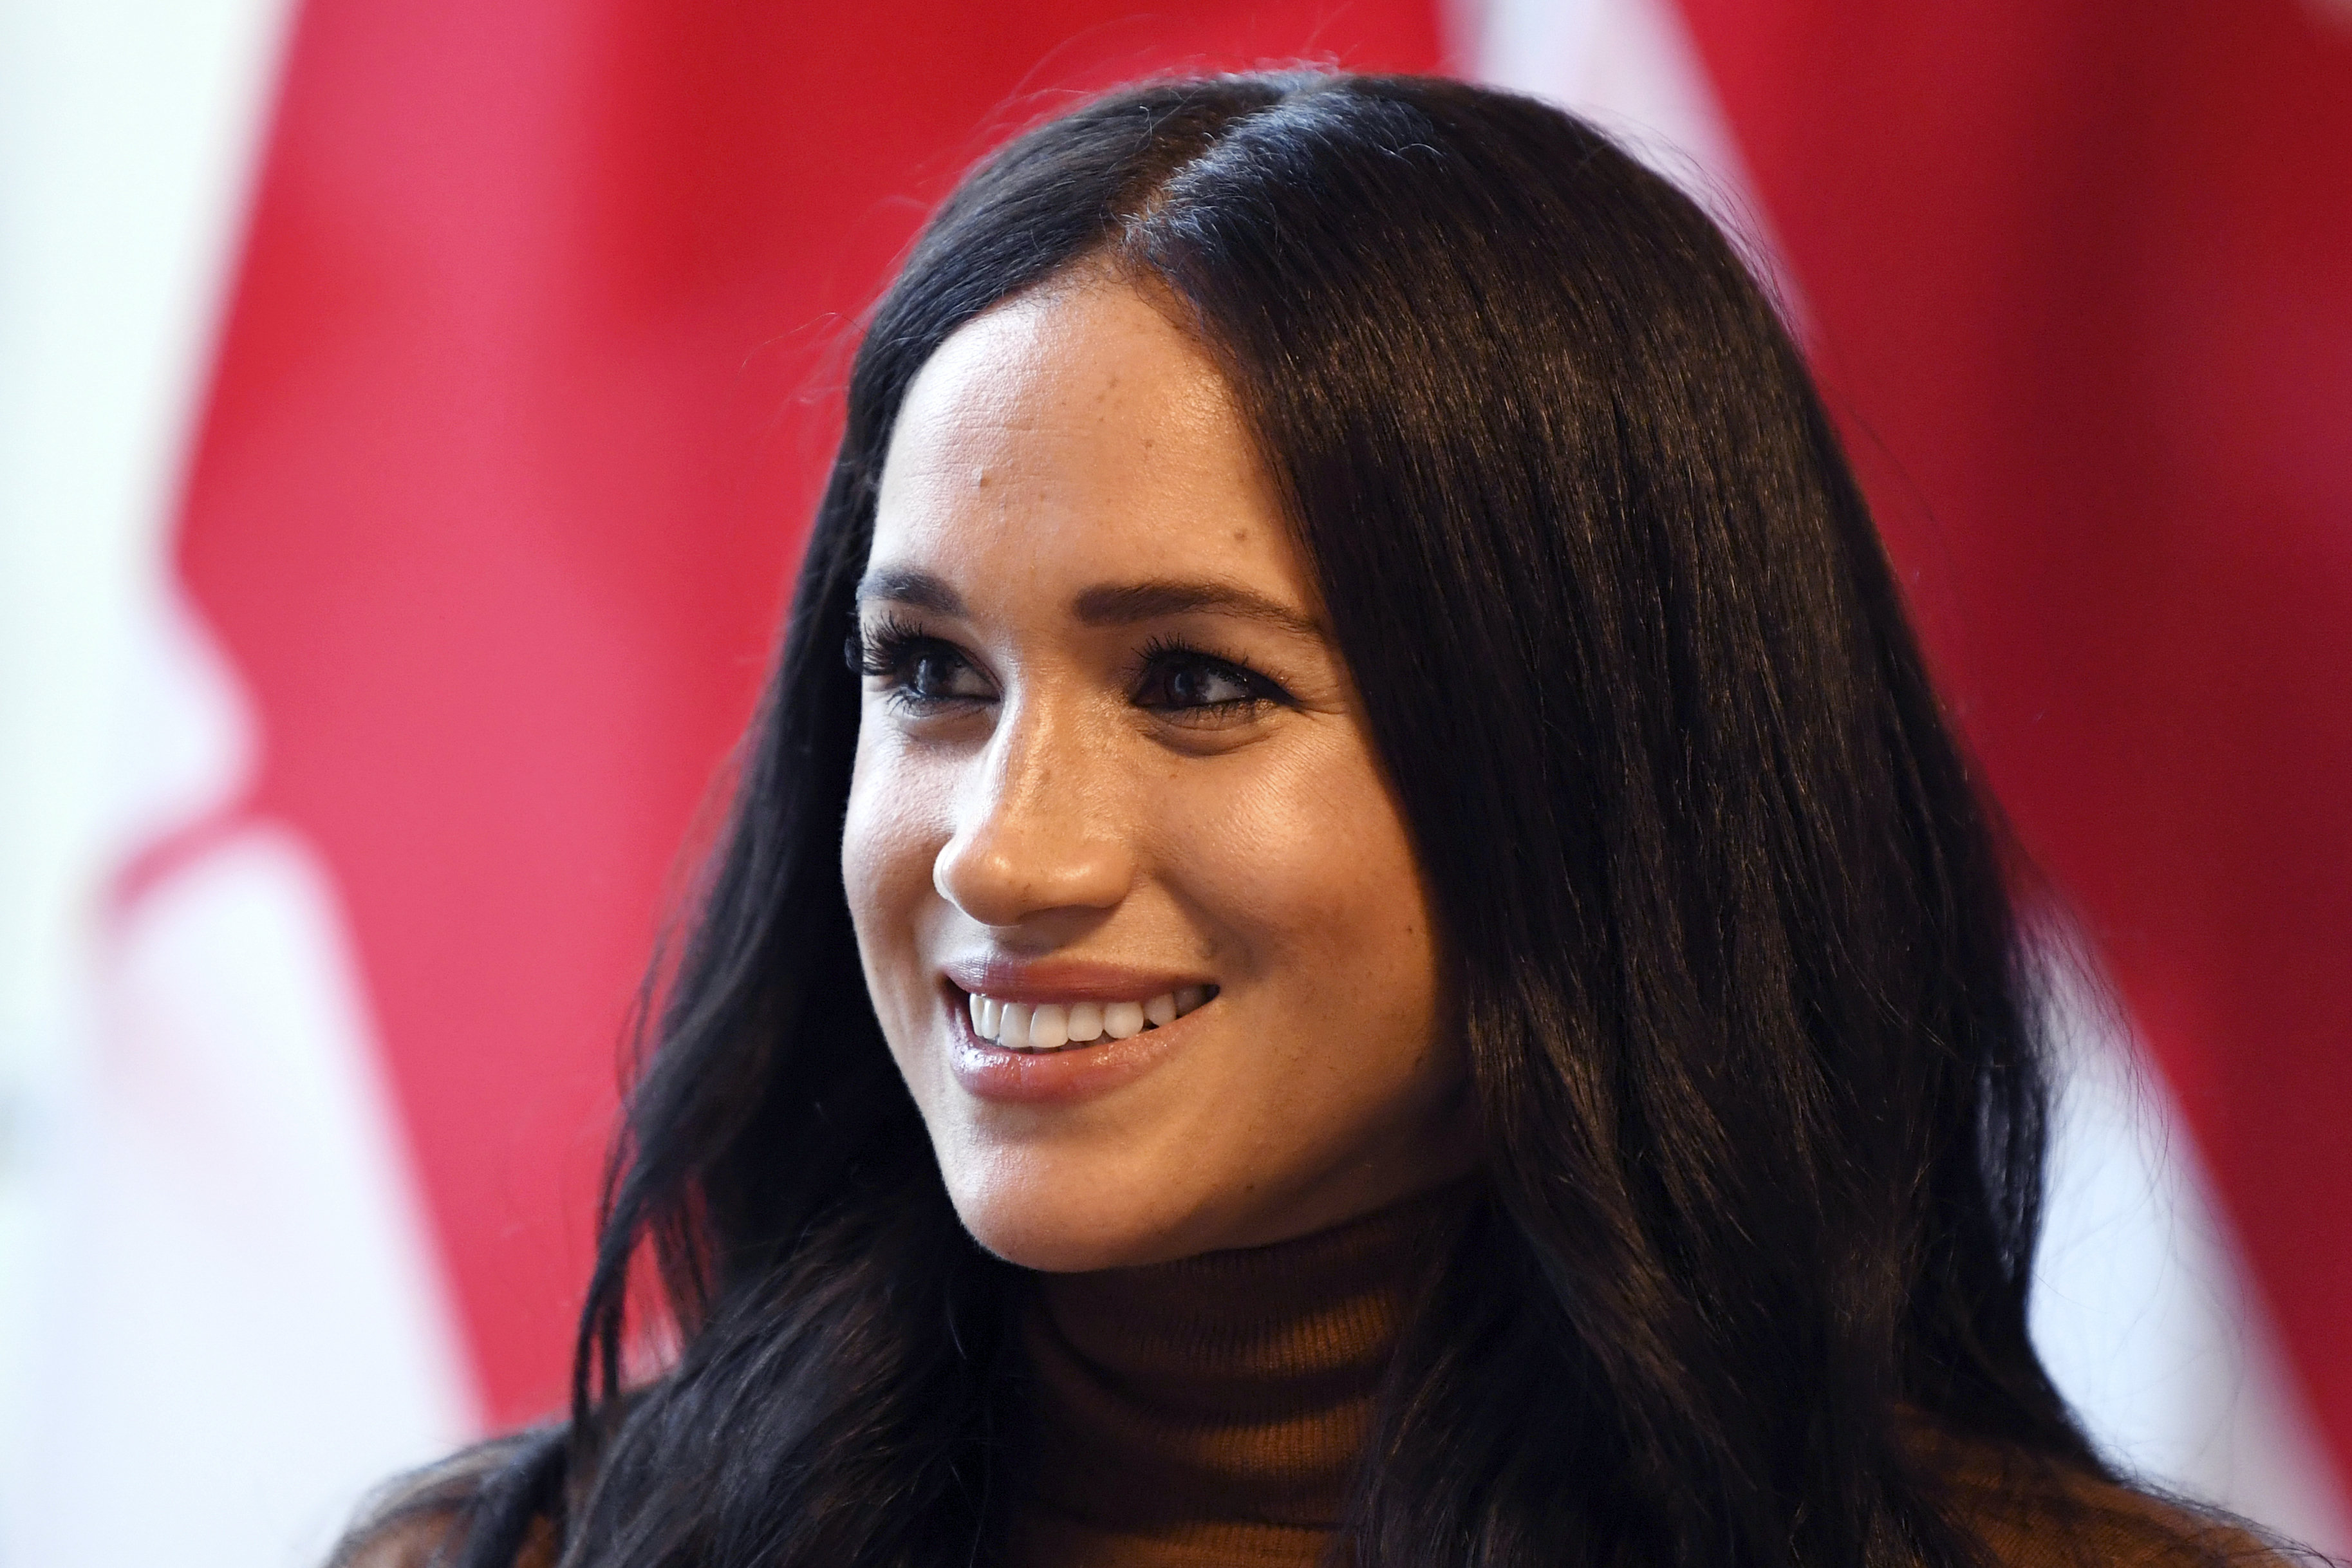 Meghan Markle Seeks Court Ruling Over 'Serious Breach' Of Privacy